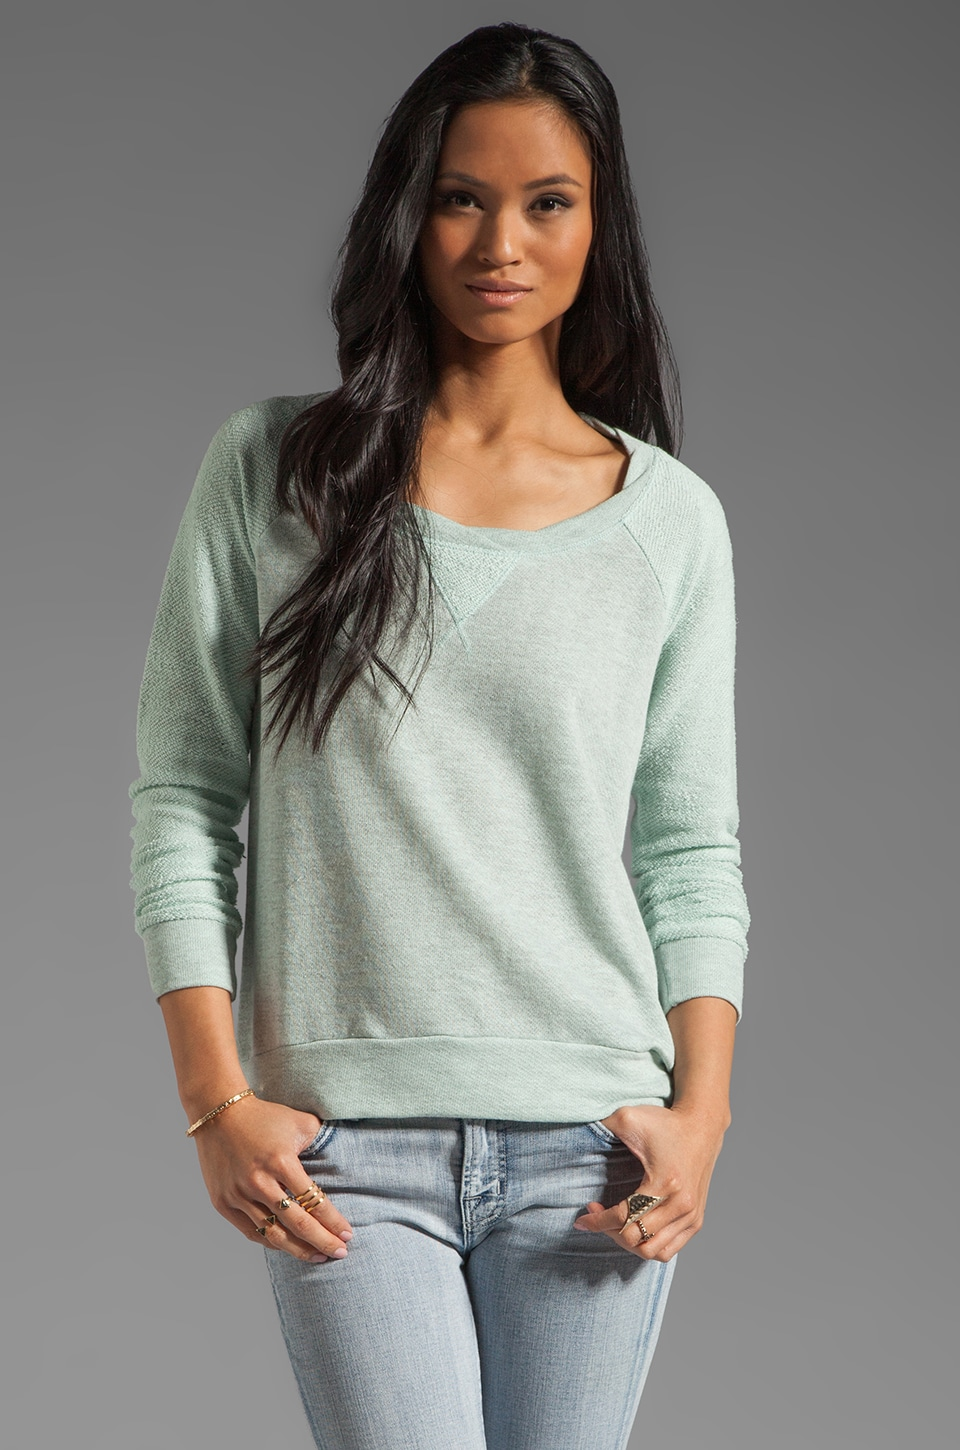 Splendid Boardwalk Active Sweatshirt in Julep